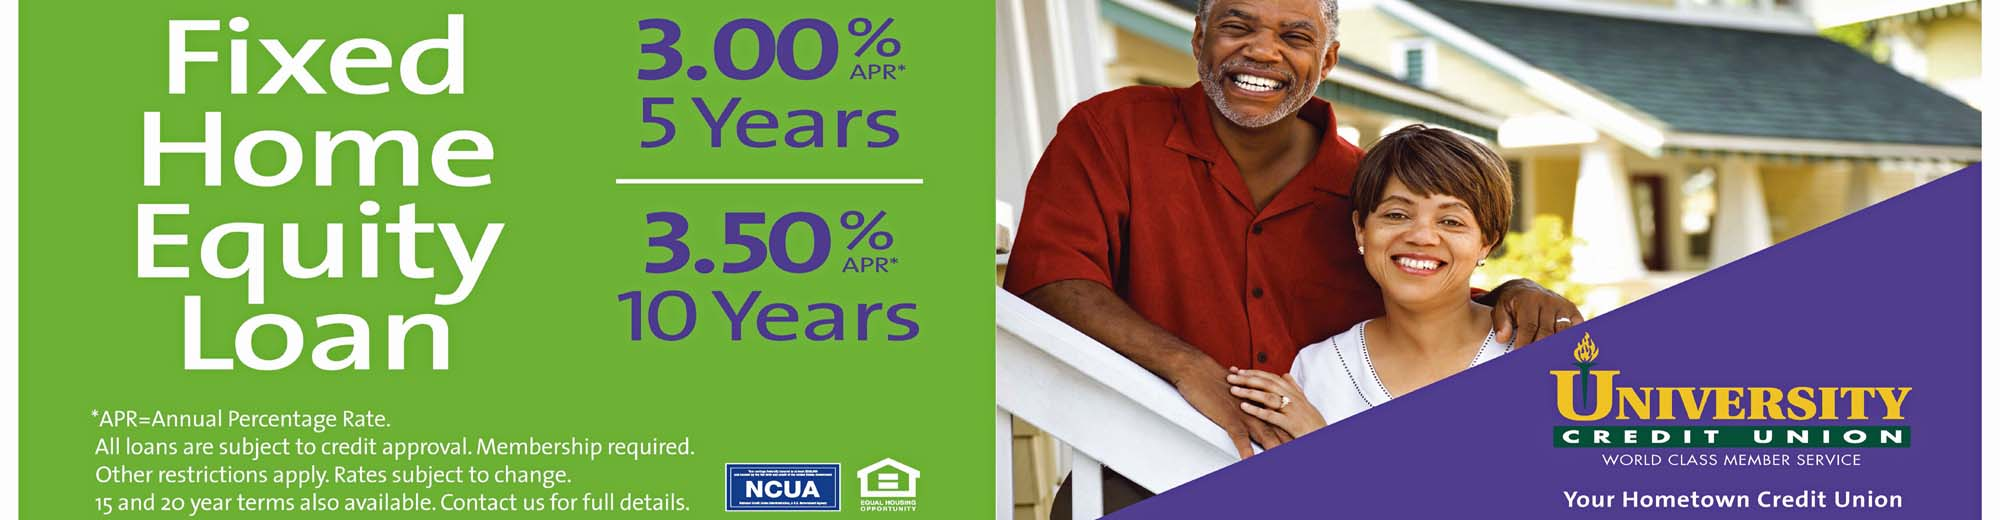 University Credit Union Home Equity Line of Credit currently as low as 3.00% APR